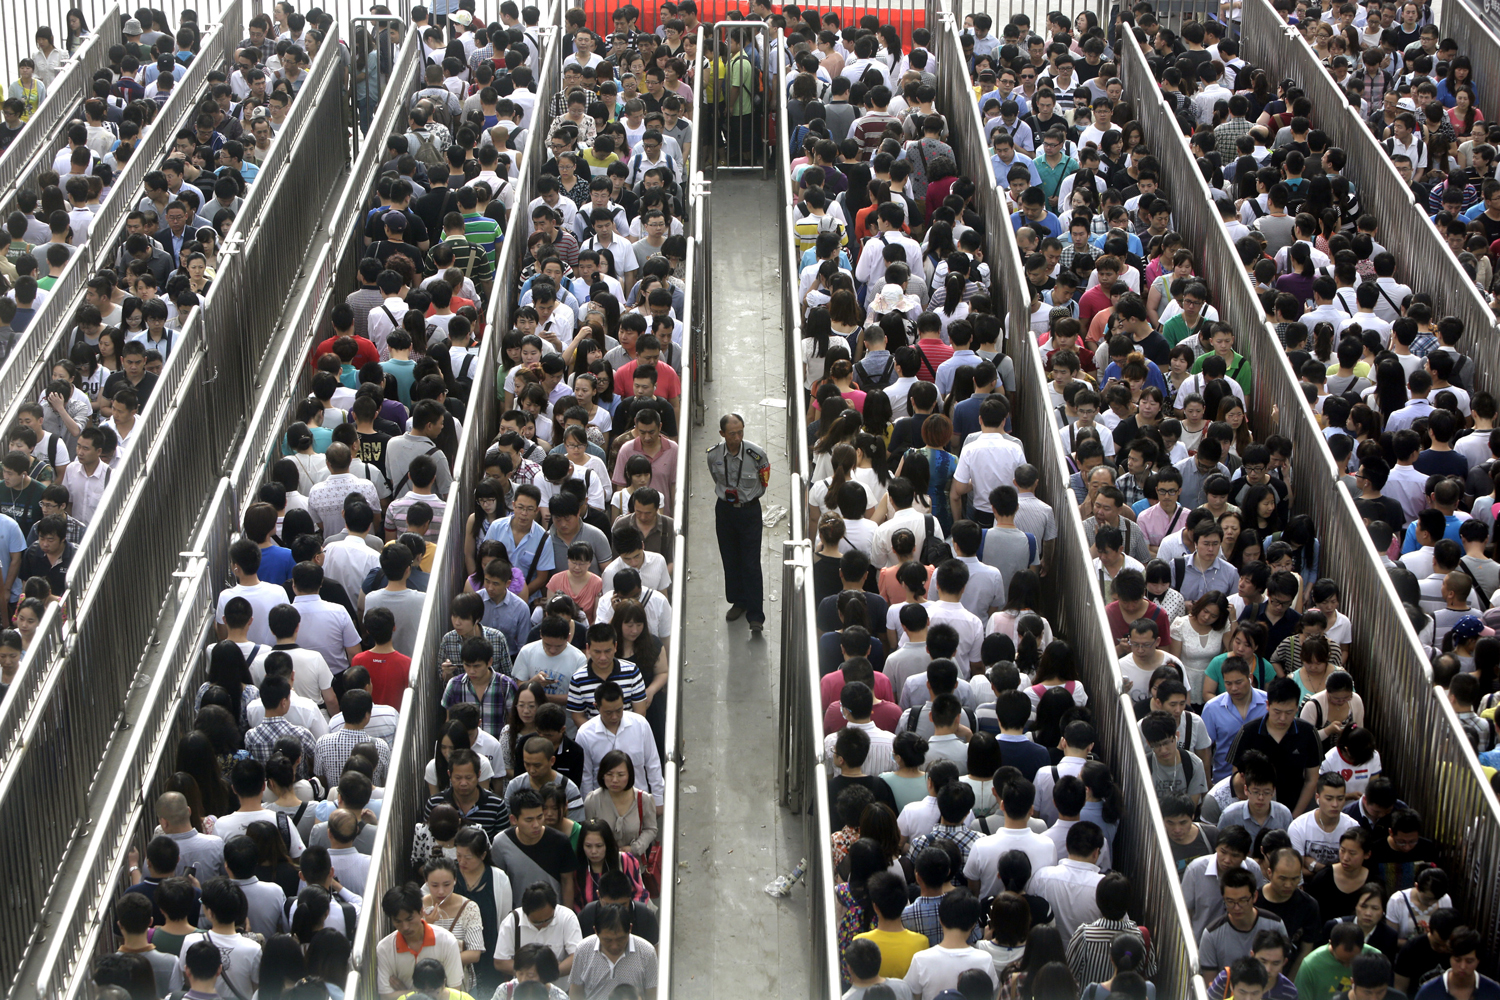 A security officer stands guard as passengers line up and wait for a security check during morning rush hour at Tiantongyuan North Station in Beijing on May 27, 2014